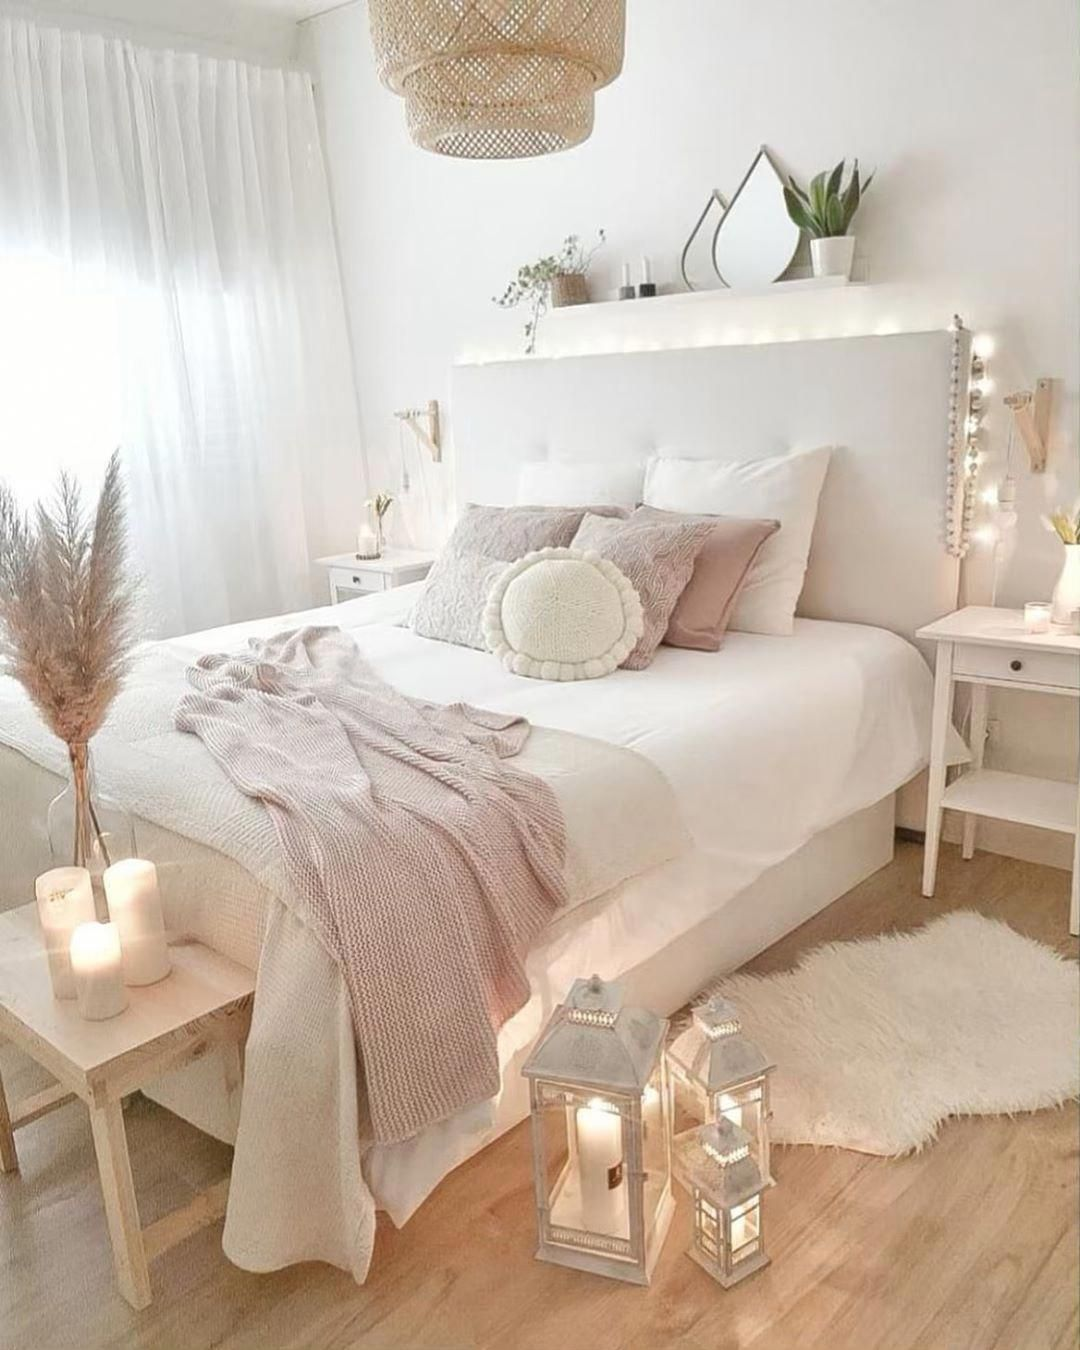 Bohemian Minimalist with City Outfiters Bed room Concepts #bedroom #bohemian #id... -  Bohemian Minimalist with City Outfiters Bed room Concepts #bedroom #bohemian #ideas #minimalist #ou - #Bed #bedroom #bohemian #City #concepts #coolbedforboys #minimalist #outfiters #room #simplebedcomforters